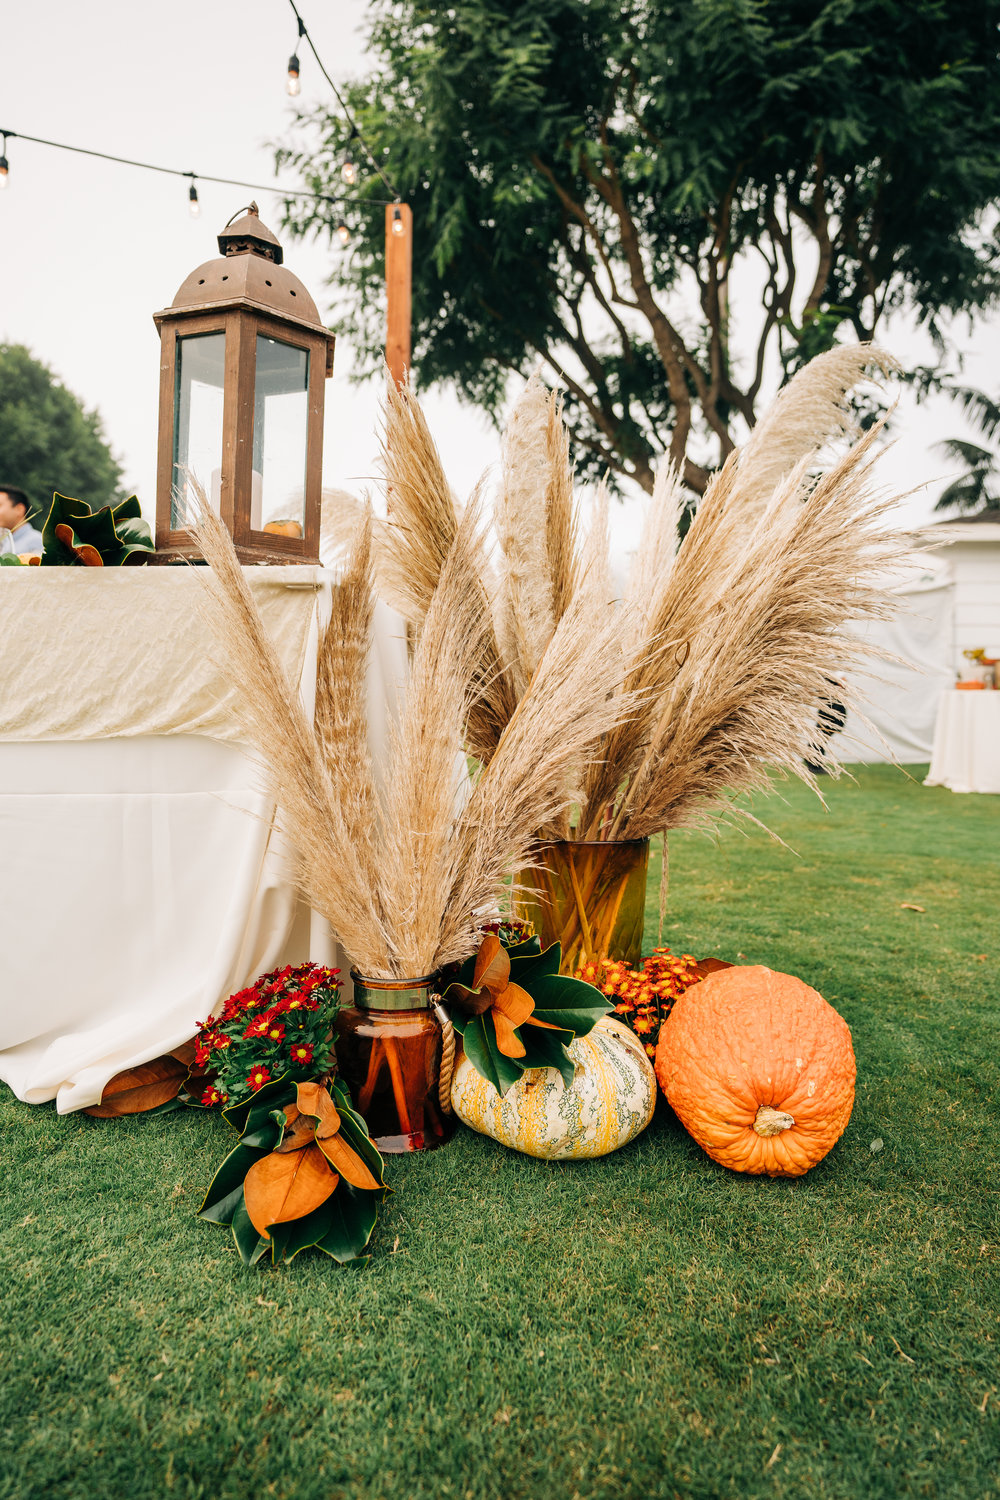 www.santabarbarawedding.com | Brandon Bibbins Photography | The Cottages at Polo Run | Bright Event Rentals | Fall Accents Display